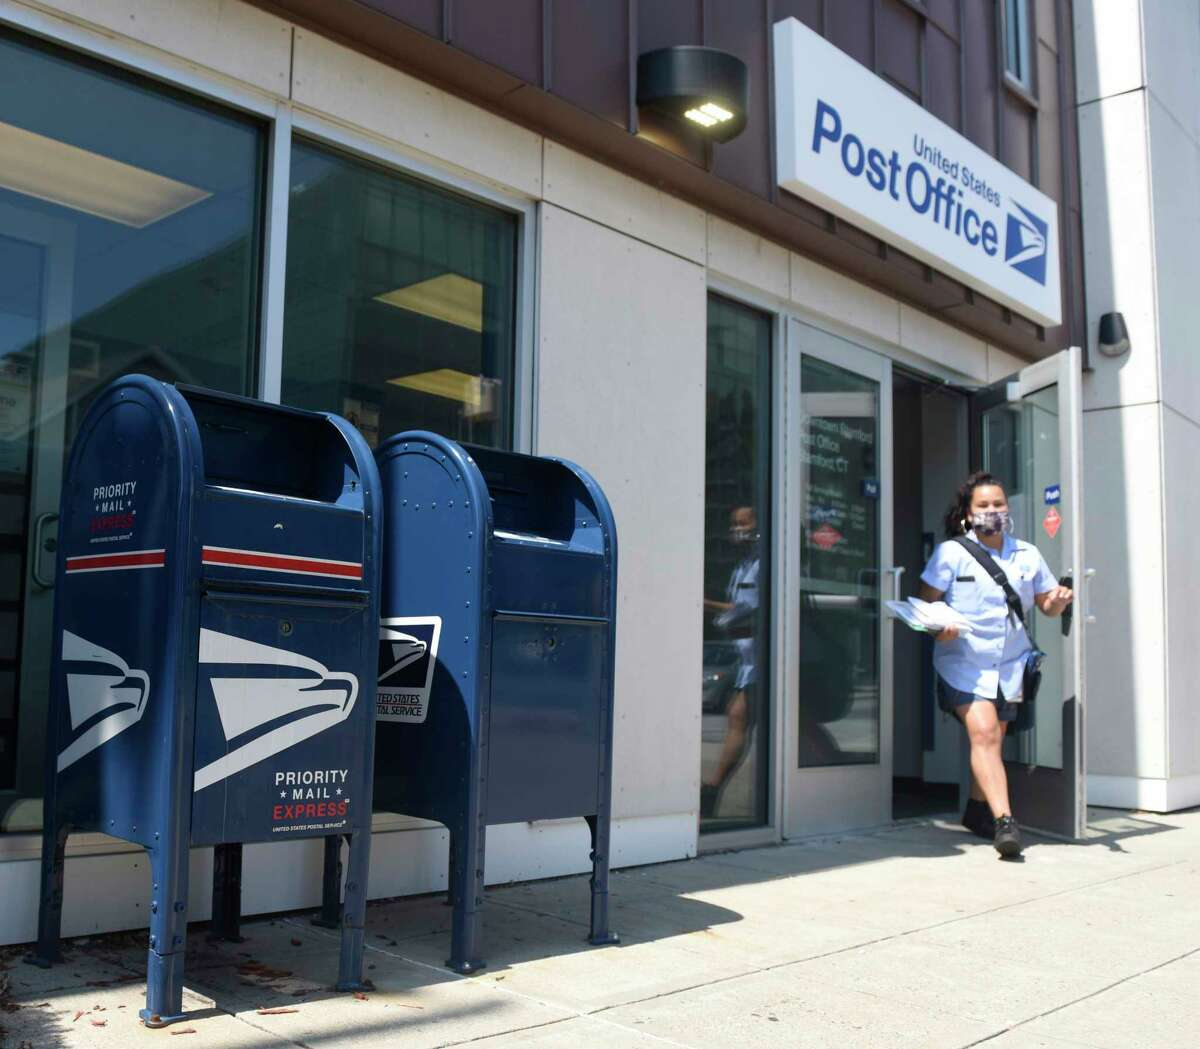 A USPS mail carrier exits the Post Office on Summer Street in Stamford, Conn. Monday, Aug. 17, 2020.